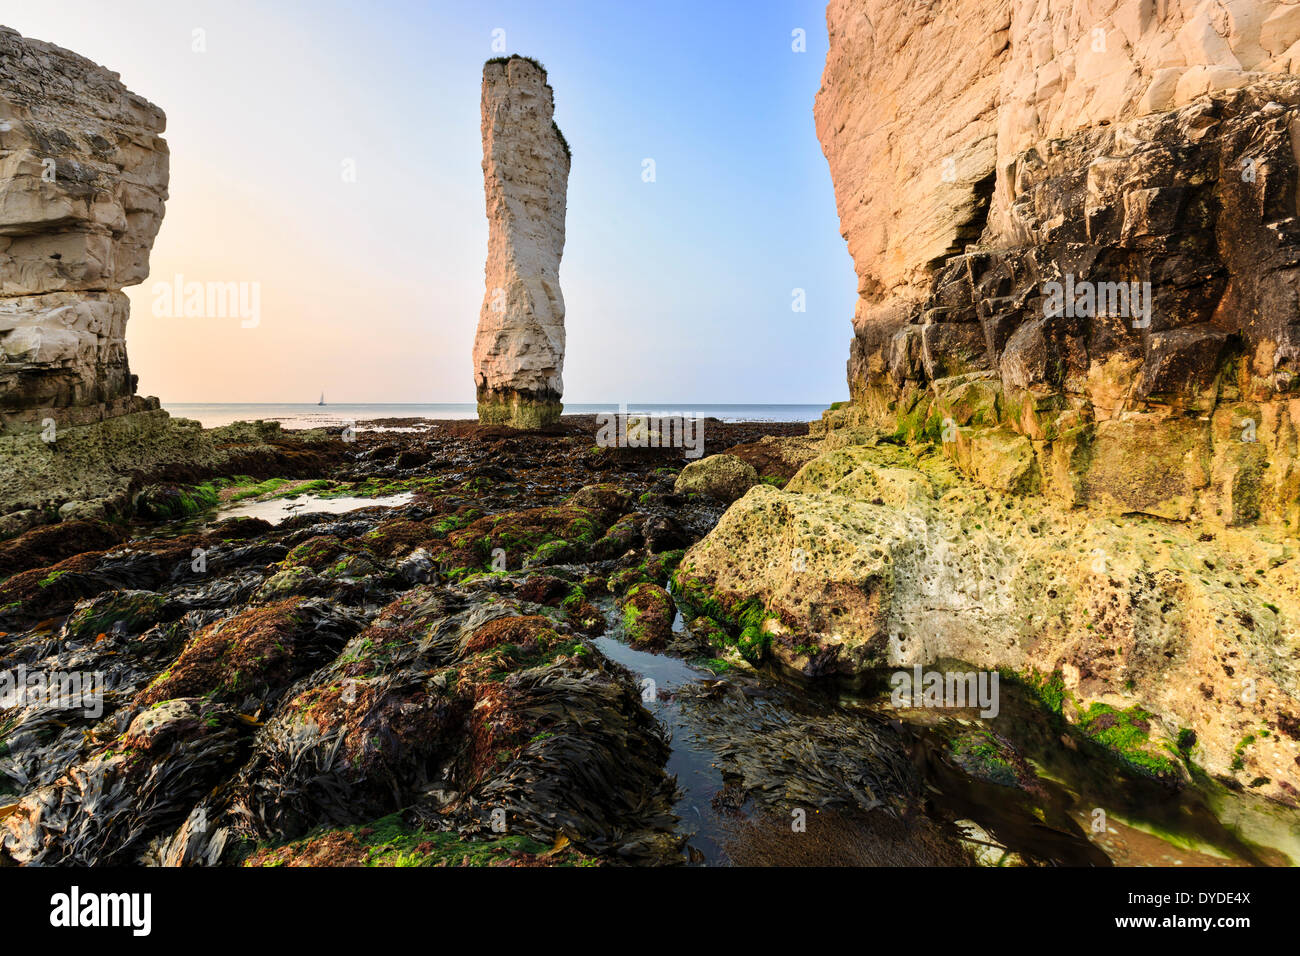 The bottom of the cliffs at Old Harrys Rock on a very low tide. - Stock Image